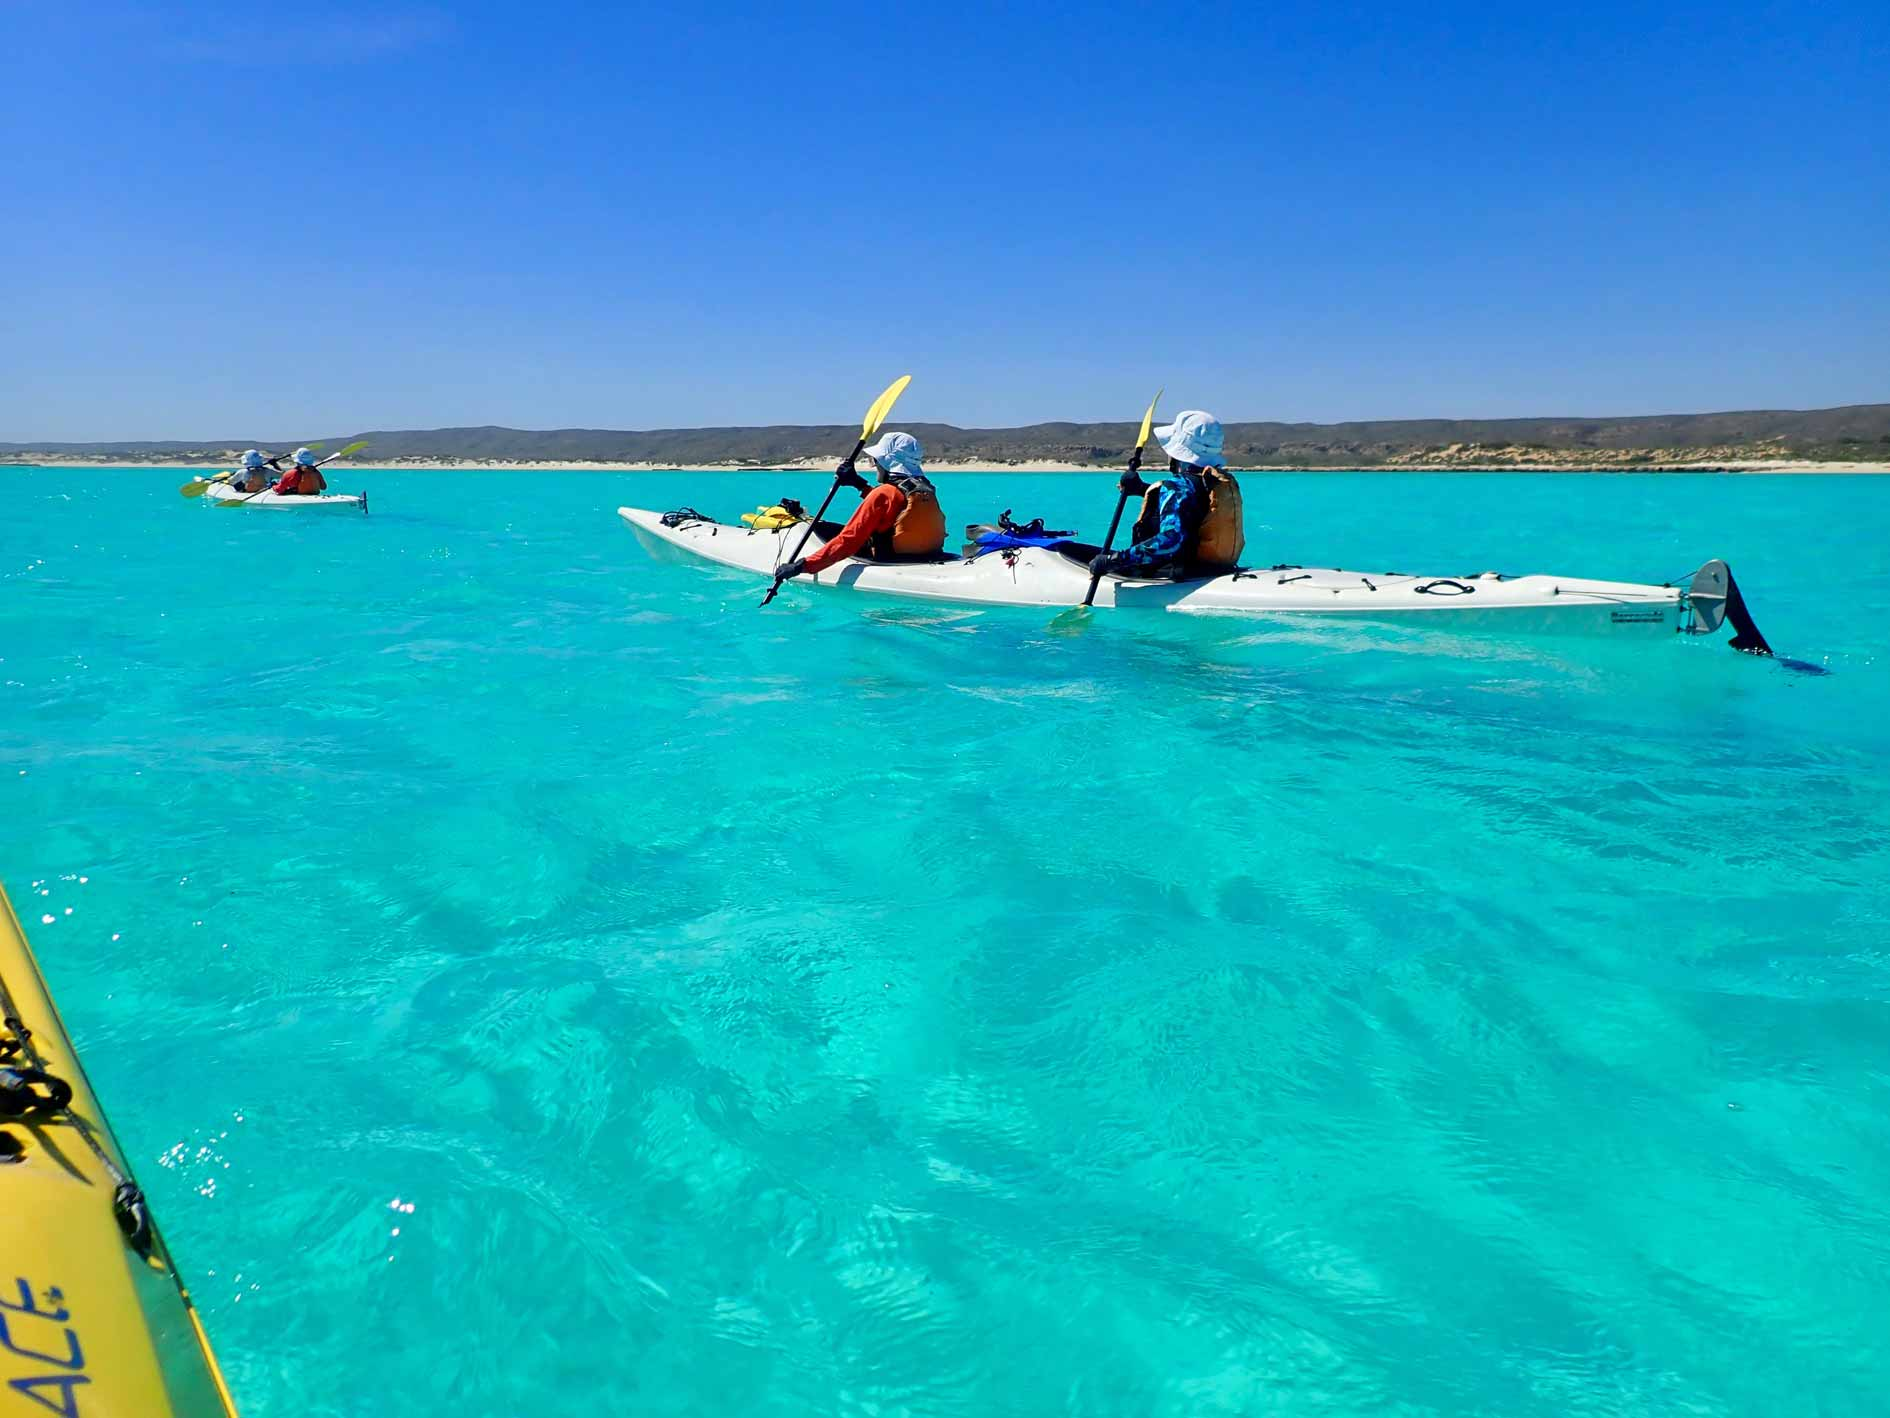 Overnight tours on Ningaloo Reef, Ultimate Safari base camp tour, Exmouth Western Australia